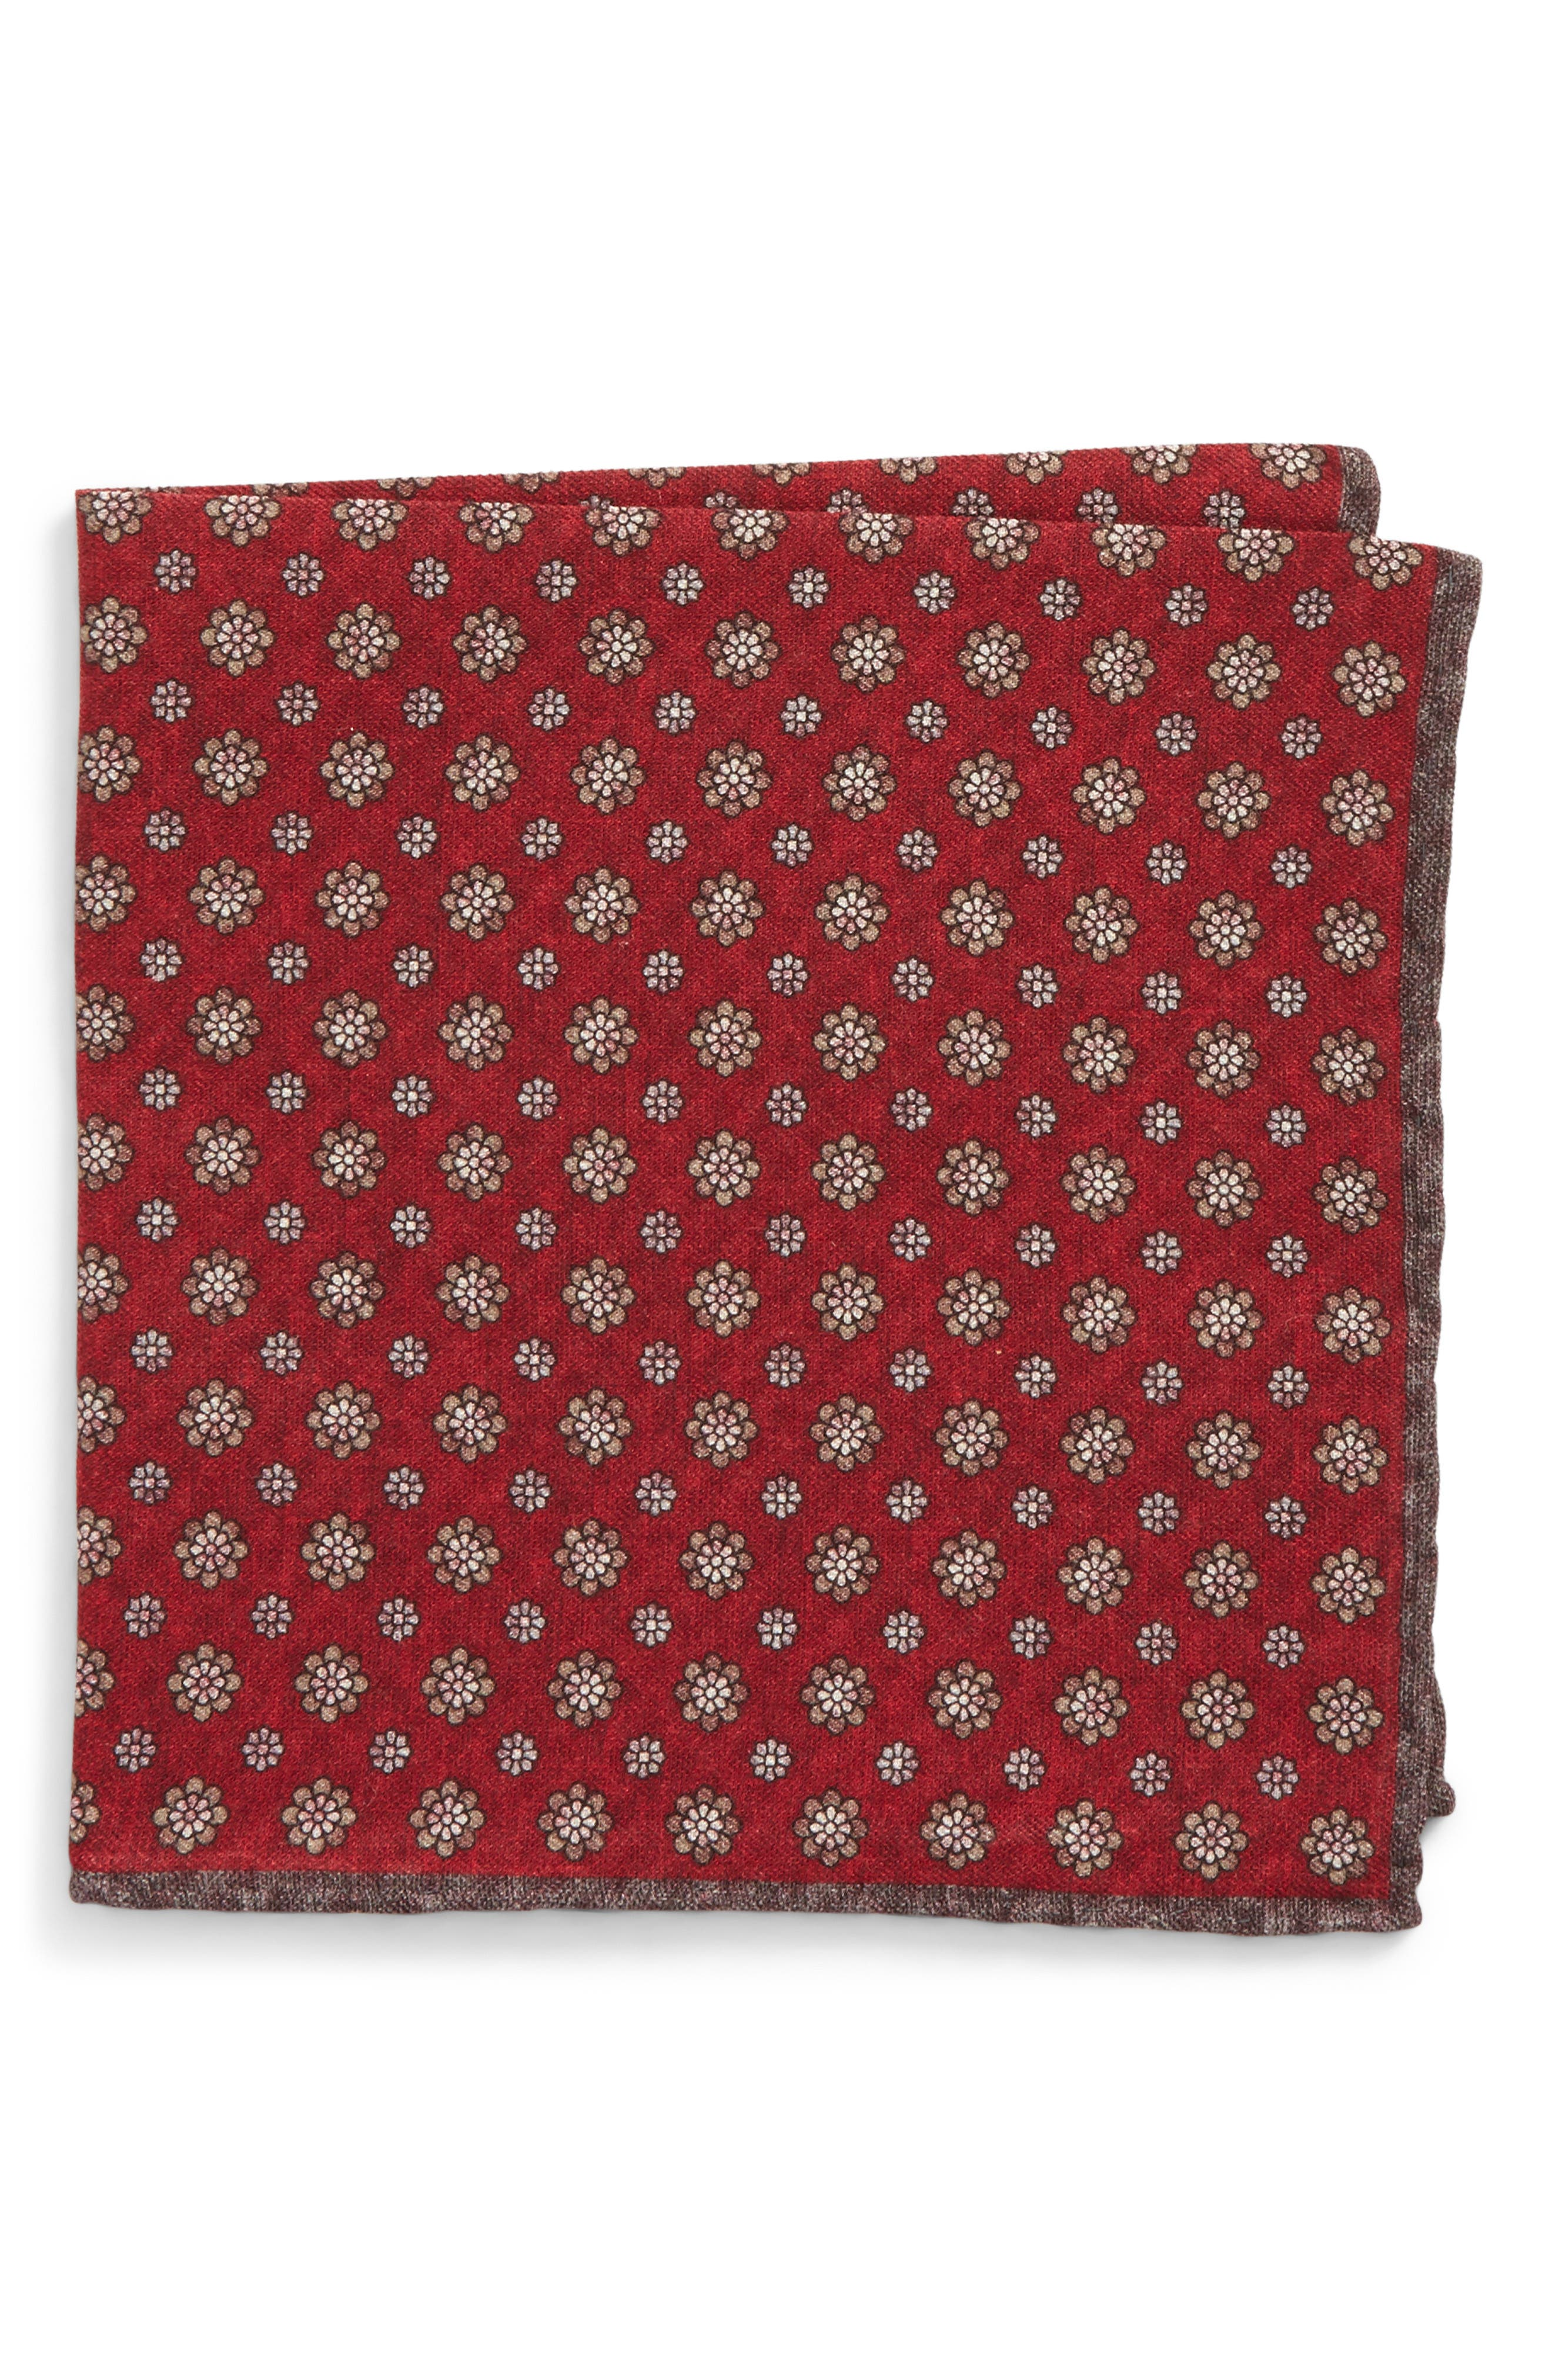 Medallion Wool & Cotton Pocket Square,                             Main thumbnail 1, color,                             Red